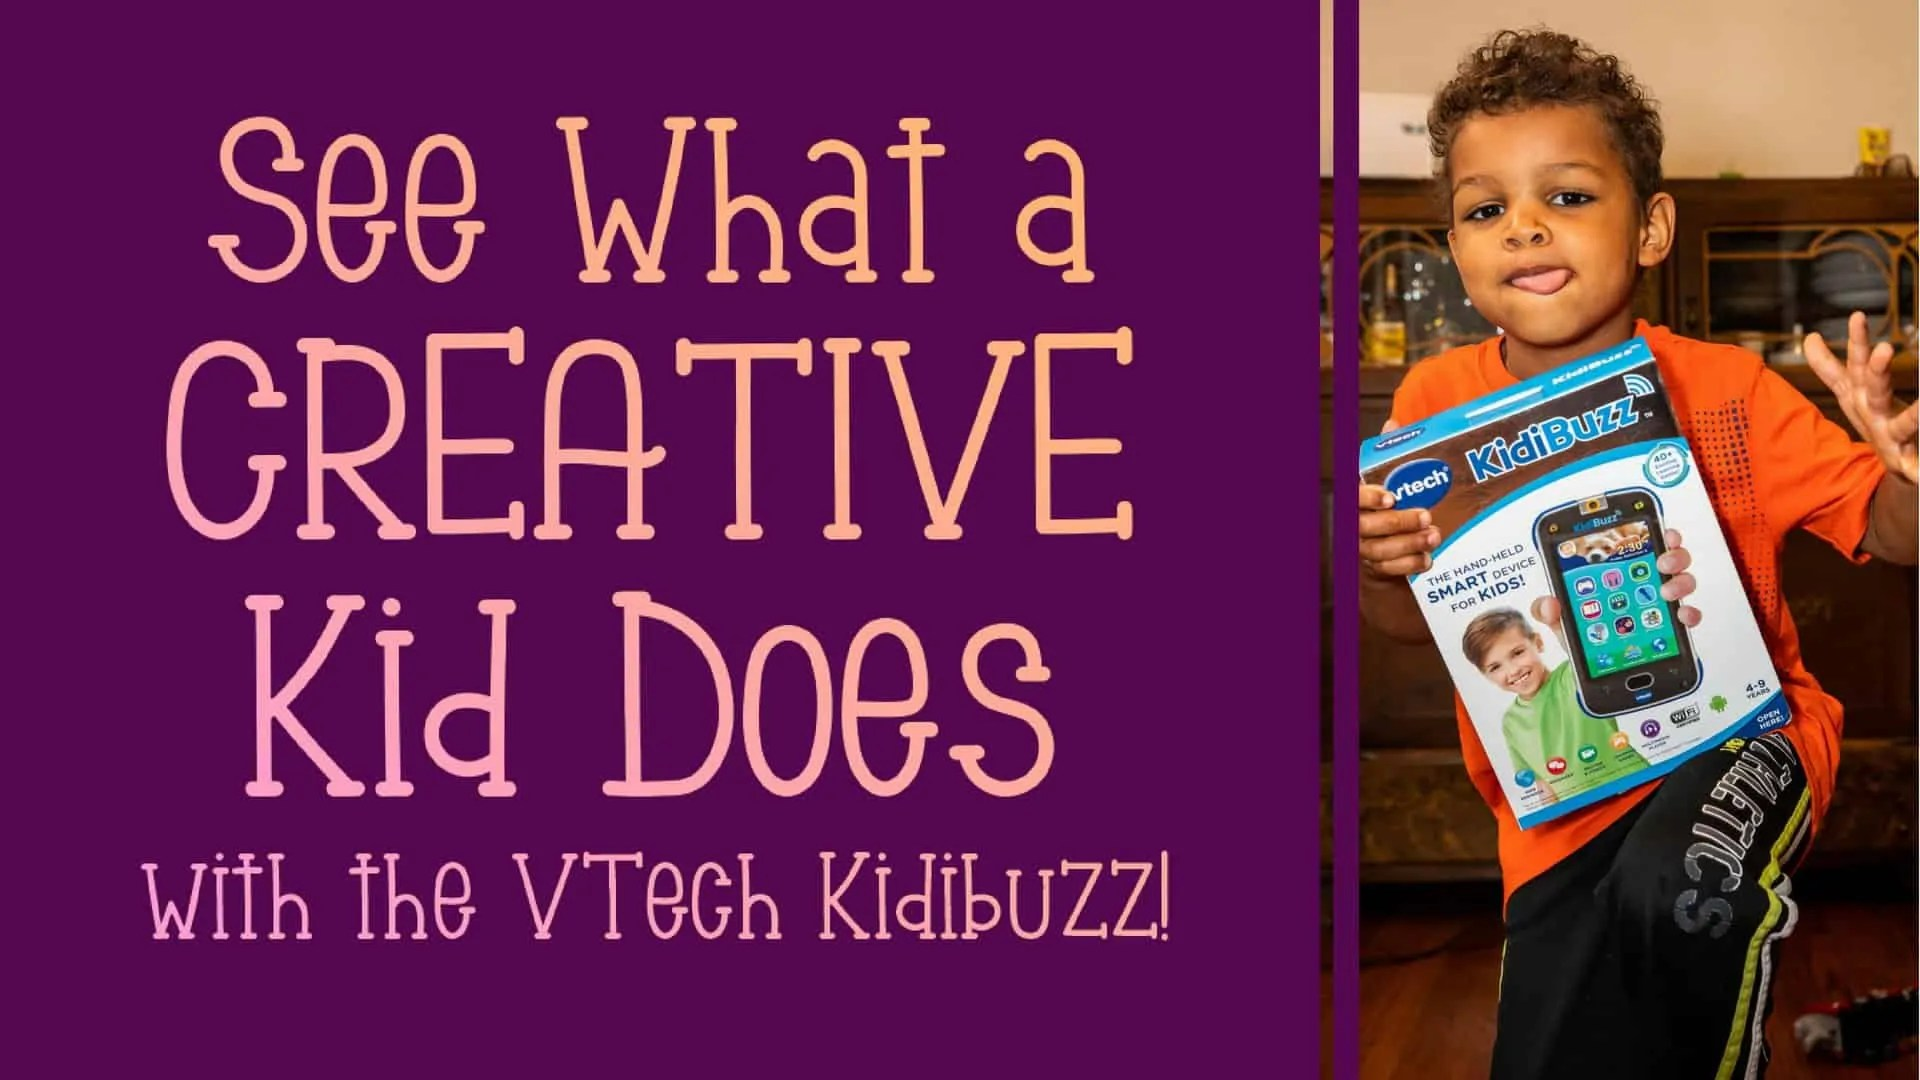 See What a CREATIVE Kid Does with the VTech Kidibuzz! (Featured Image)